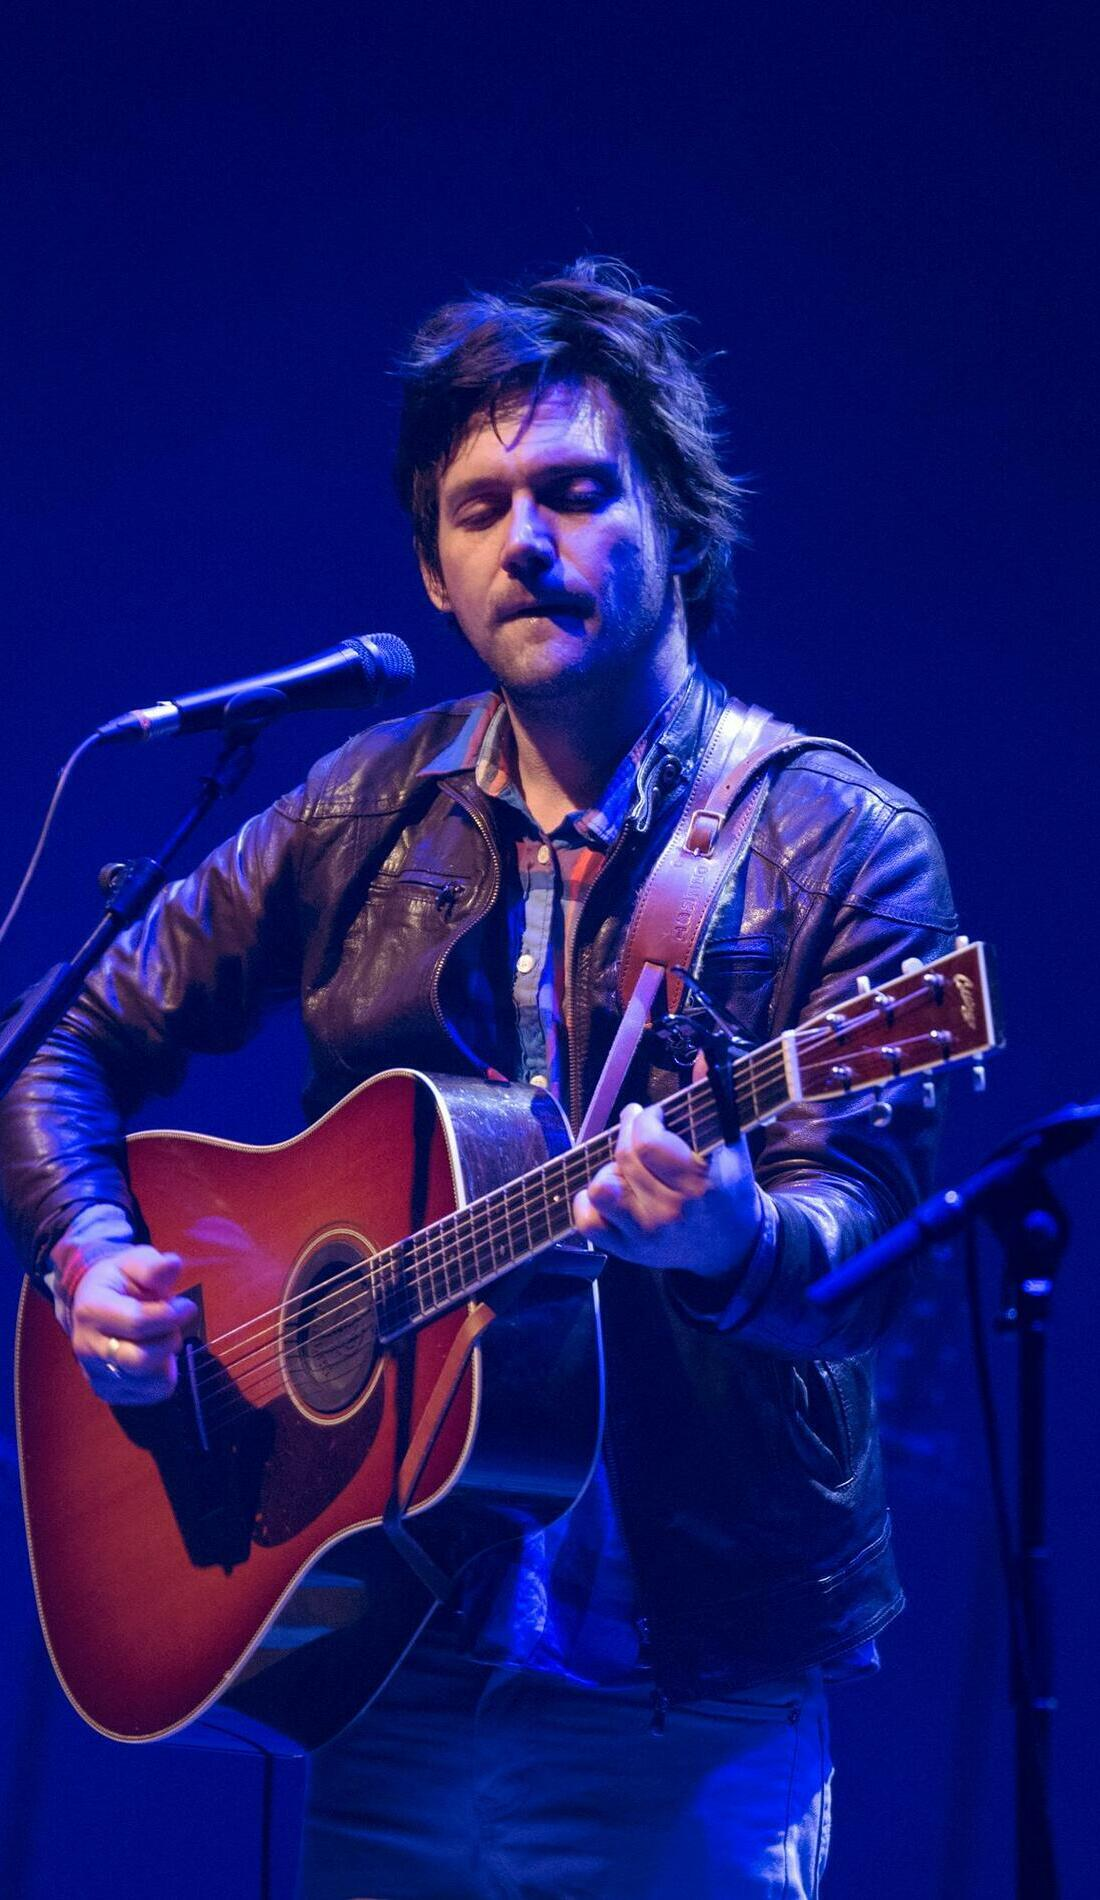 A Conor Oberst live event